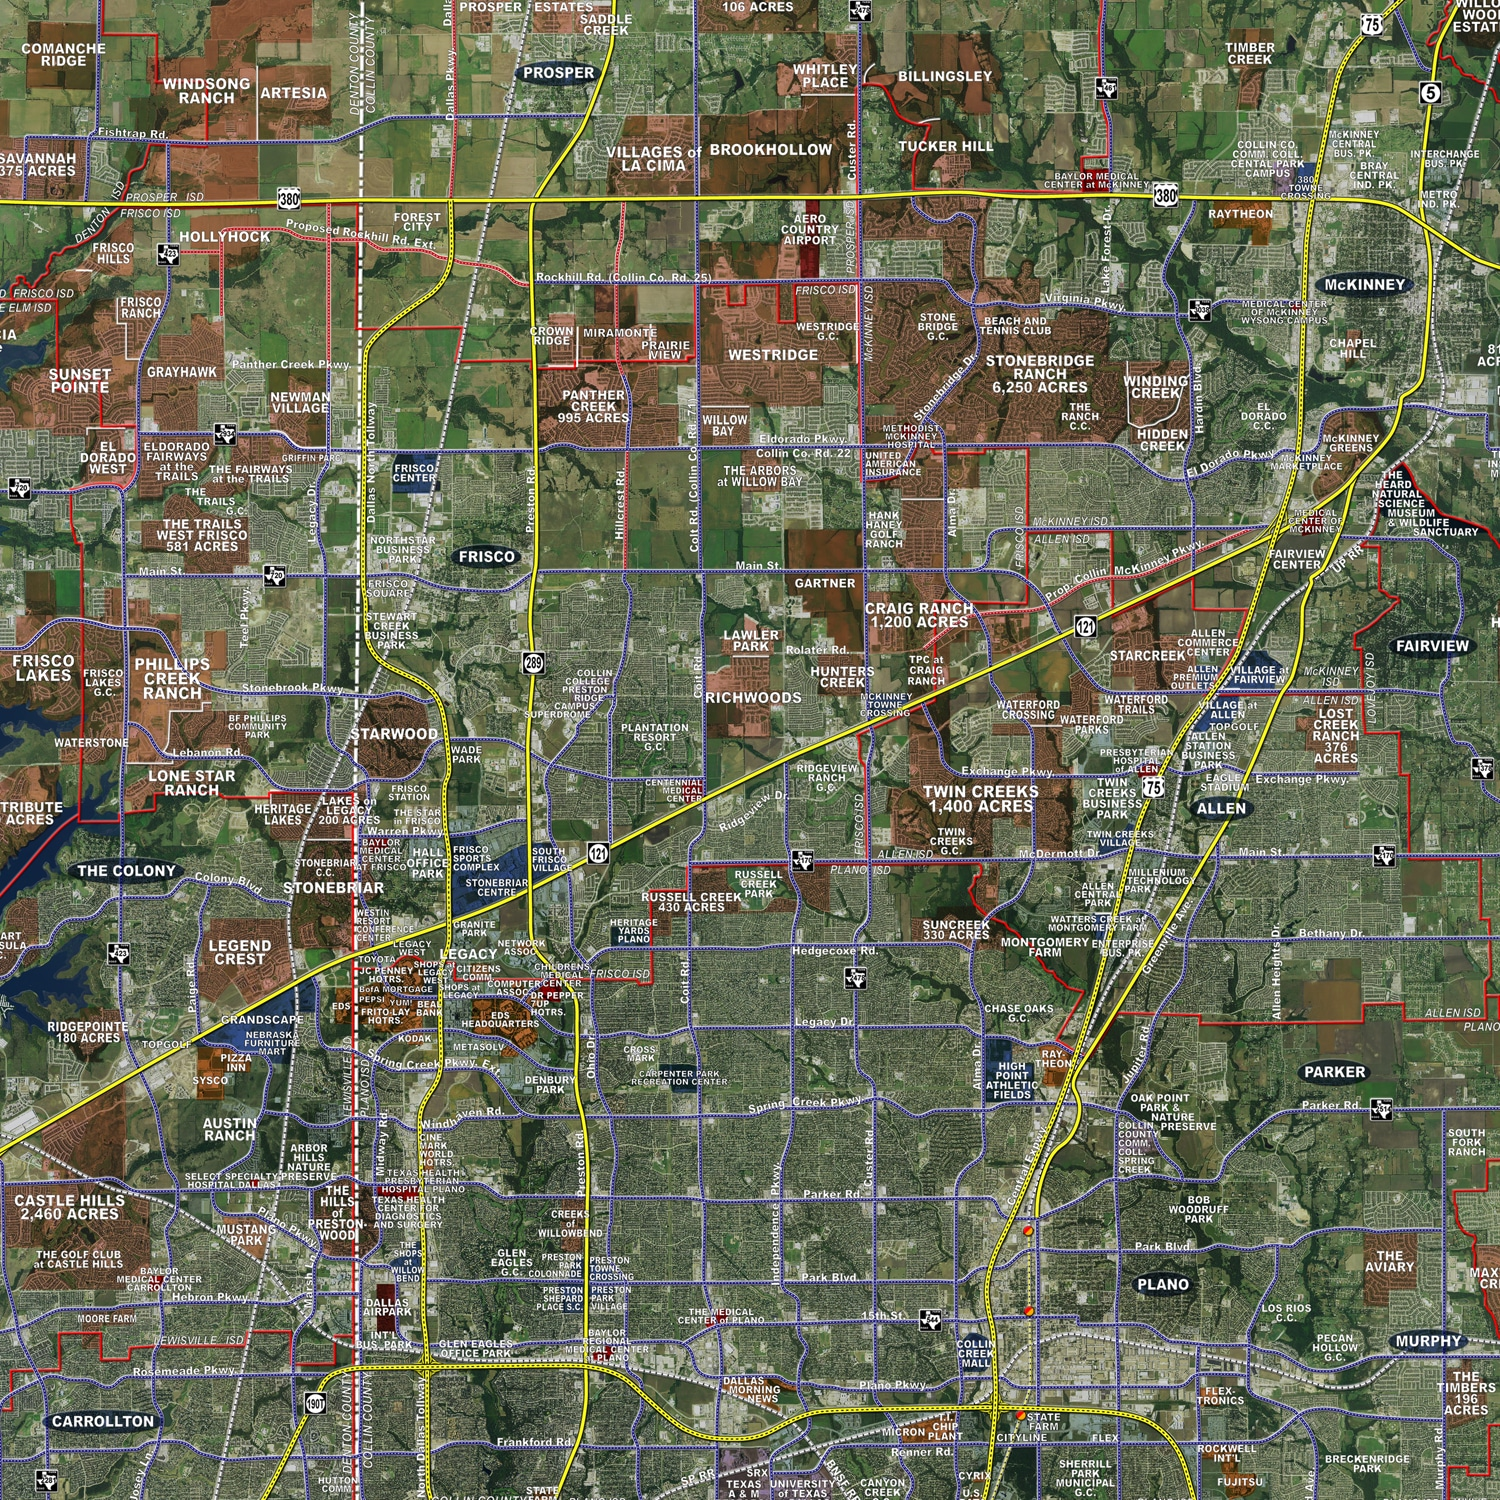 Fort Worth Dallas Map.Dallas Fort Worth Standard Rolled Aerial Map Landiscor Real